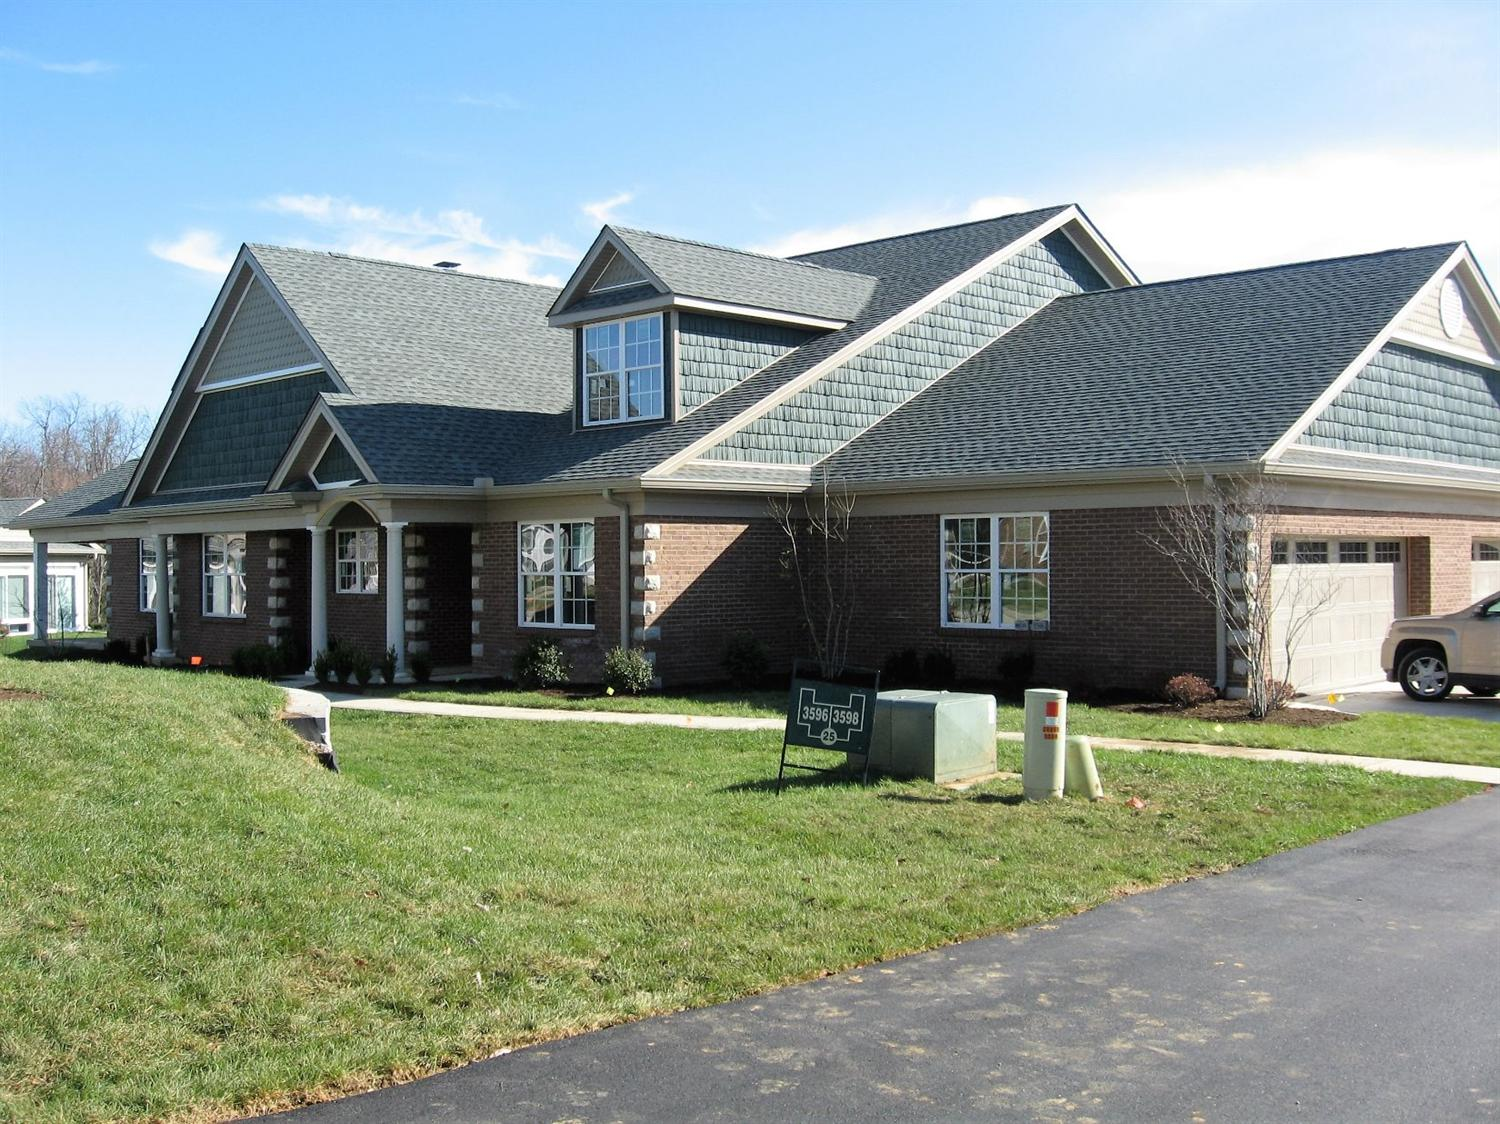 3596 Rabbits Foot Trail, Lexington, KY 40503